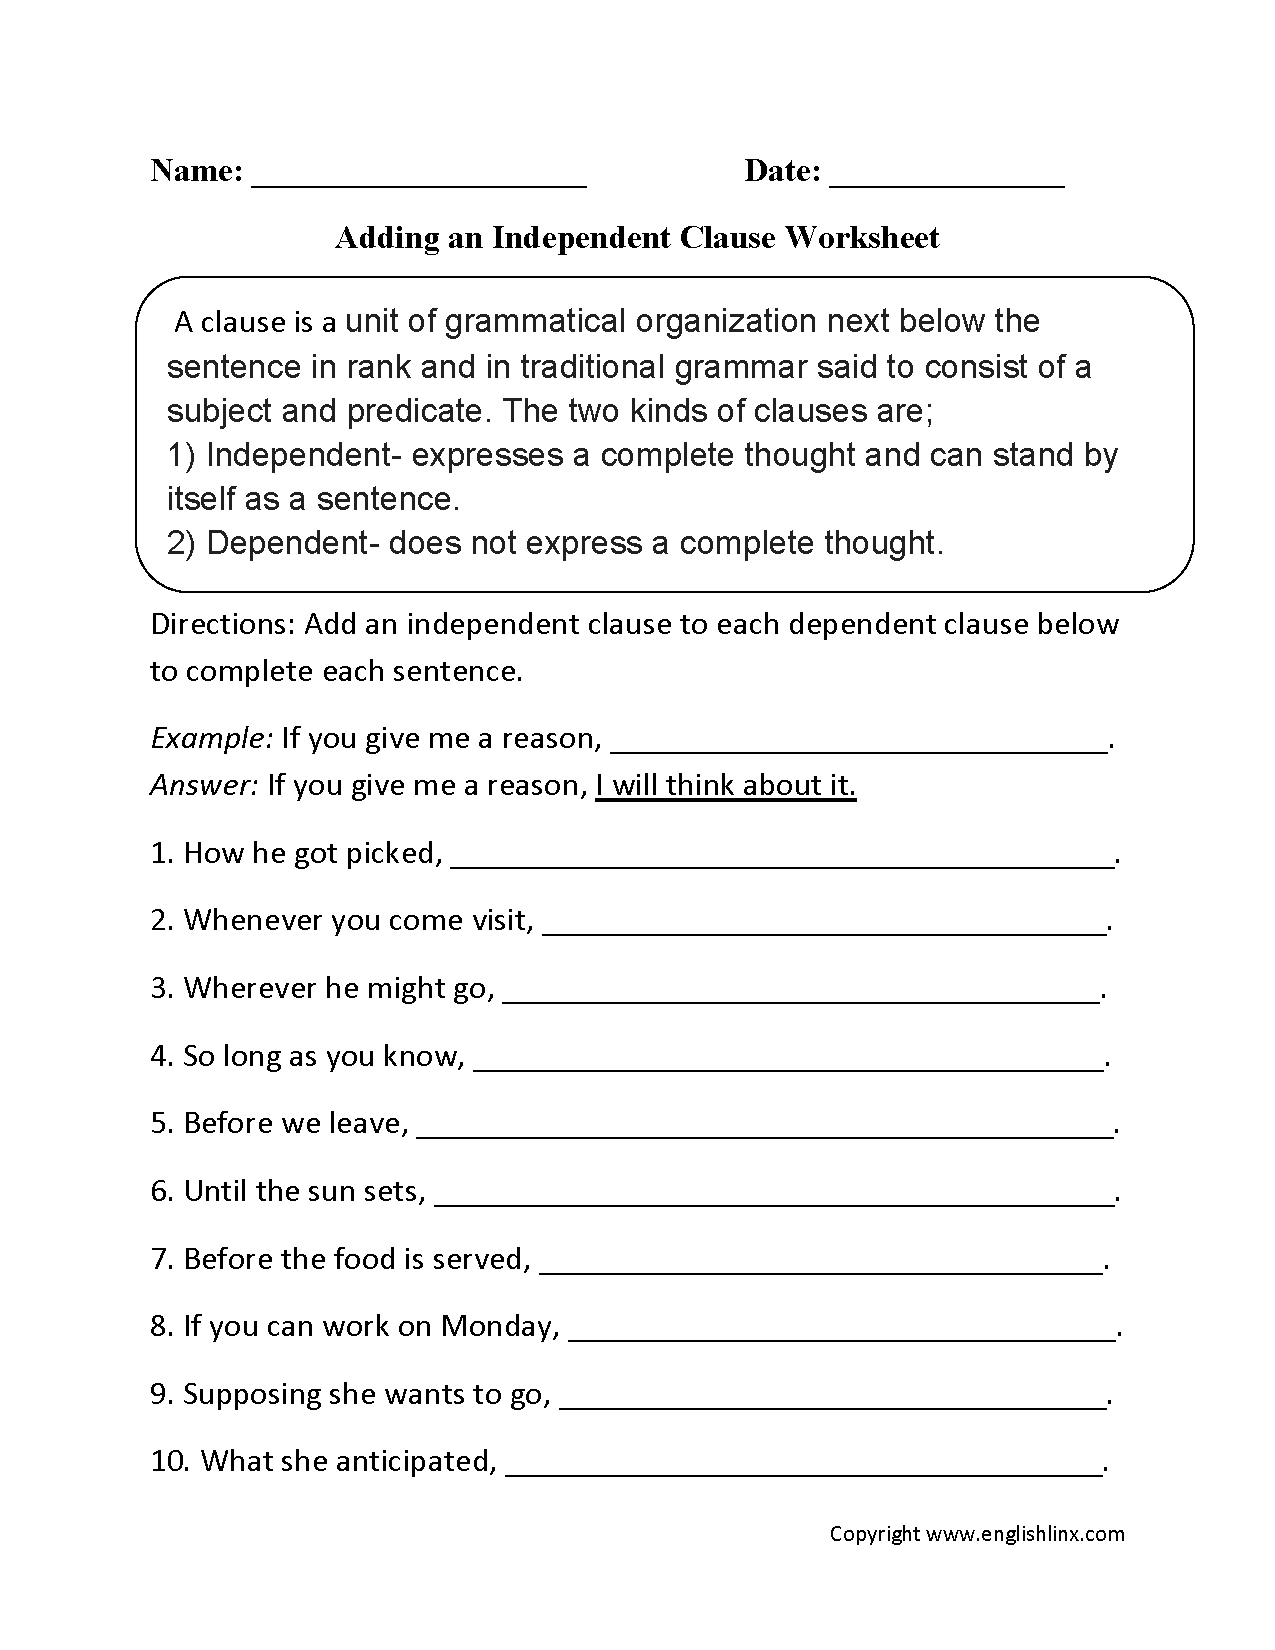 Uncategorized 10th Grade Worksheets englishlinx com clauses worksheets adding an inependent clause worksheet